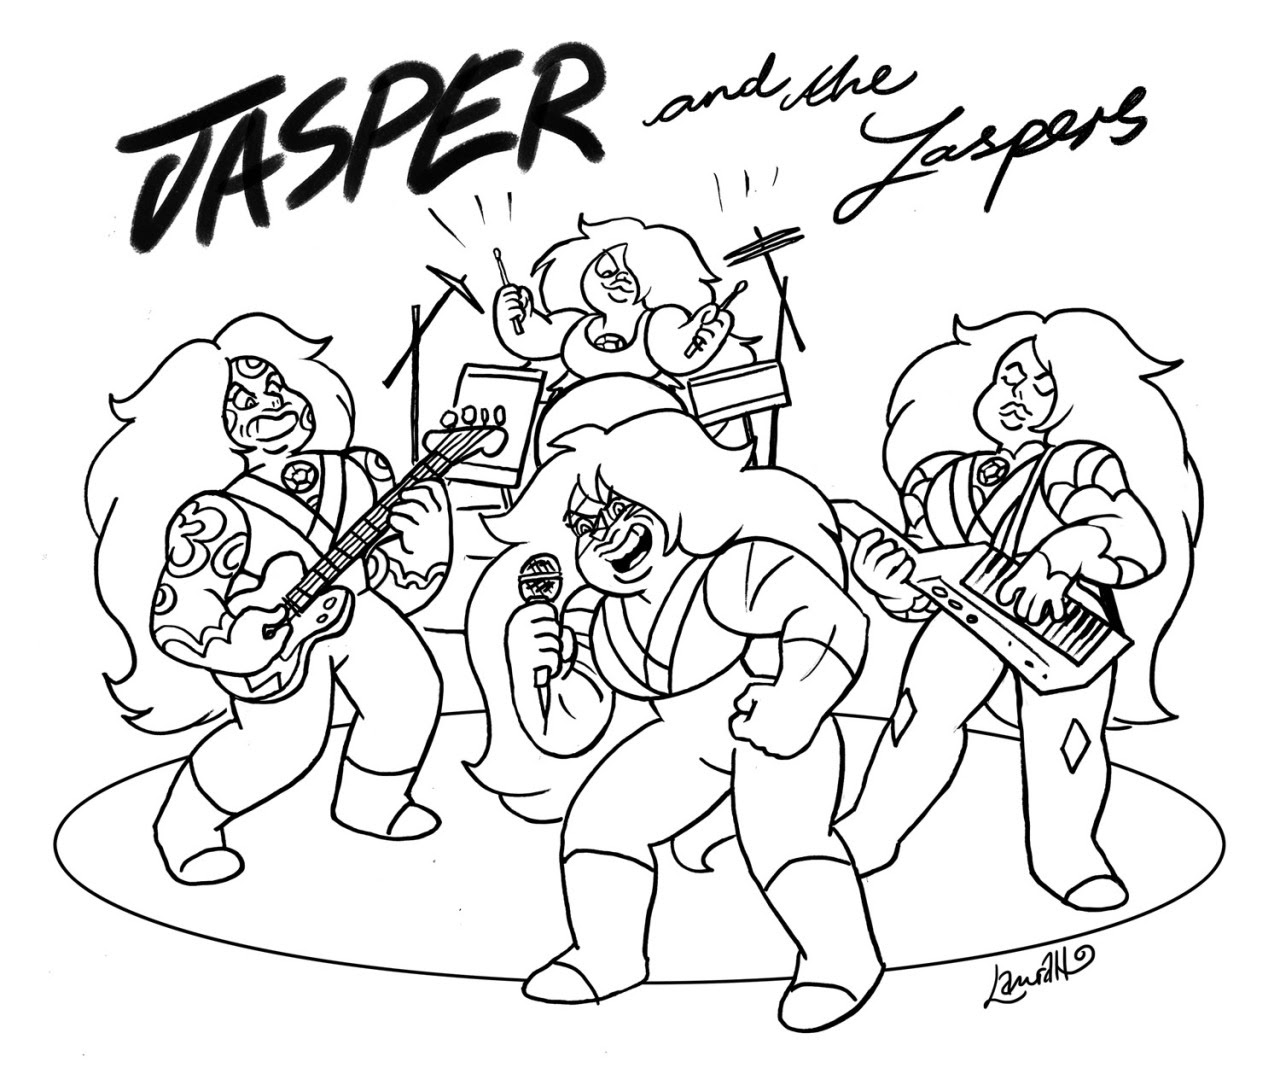 I think we all know the real reason Jasper's gathering gems like her - she's trying to get the band back together Jasper and the Jaspers Come on now don't be shy I learned to stay true to myself By...